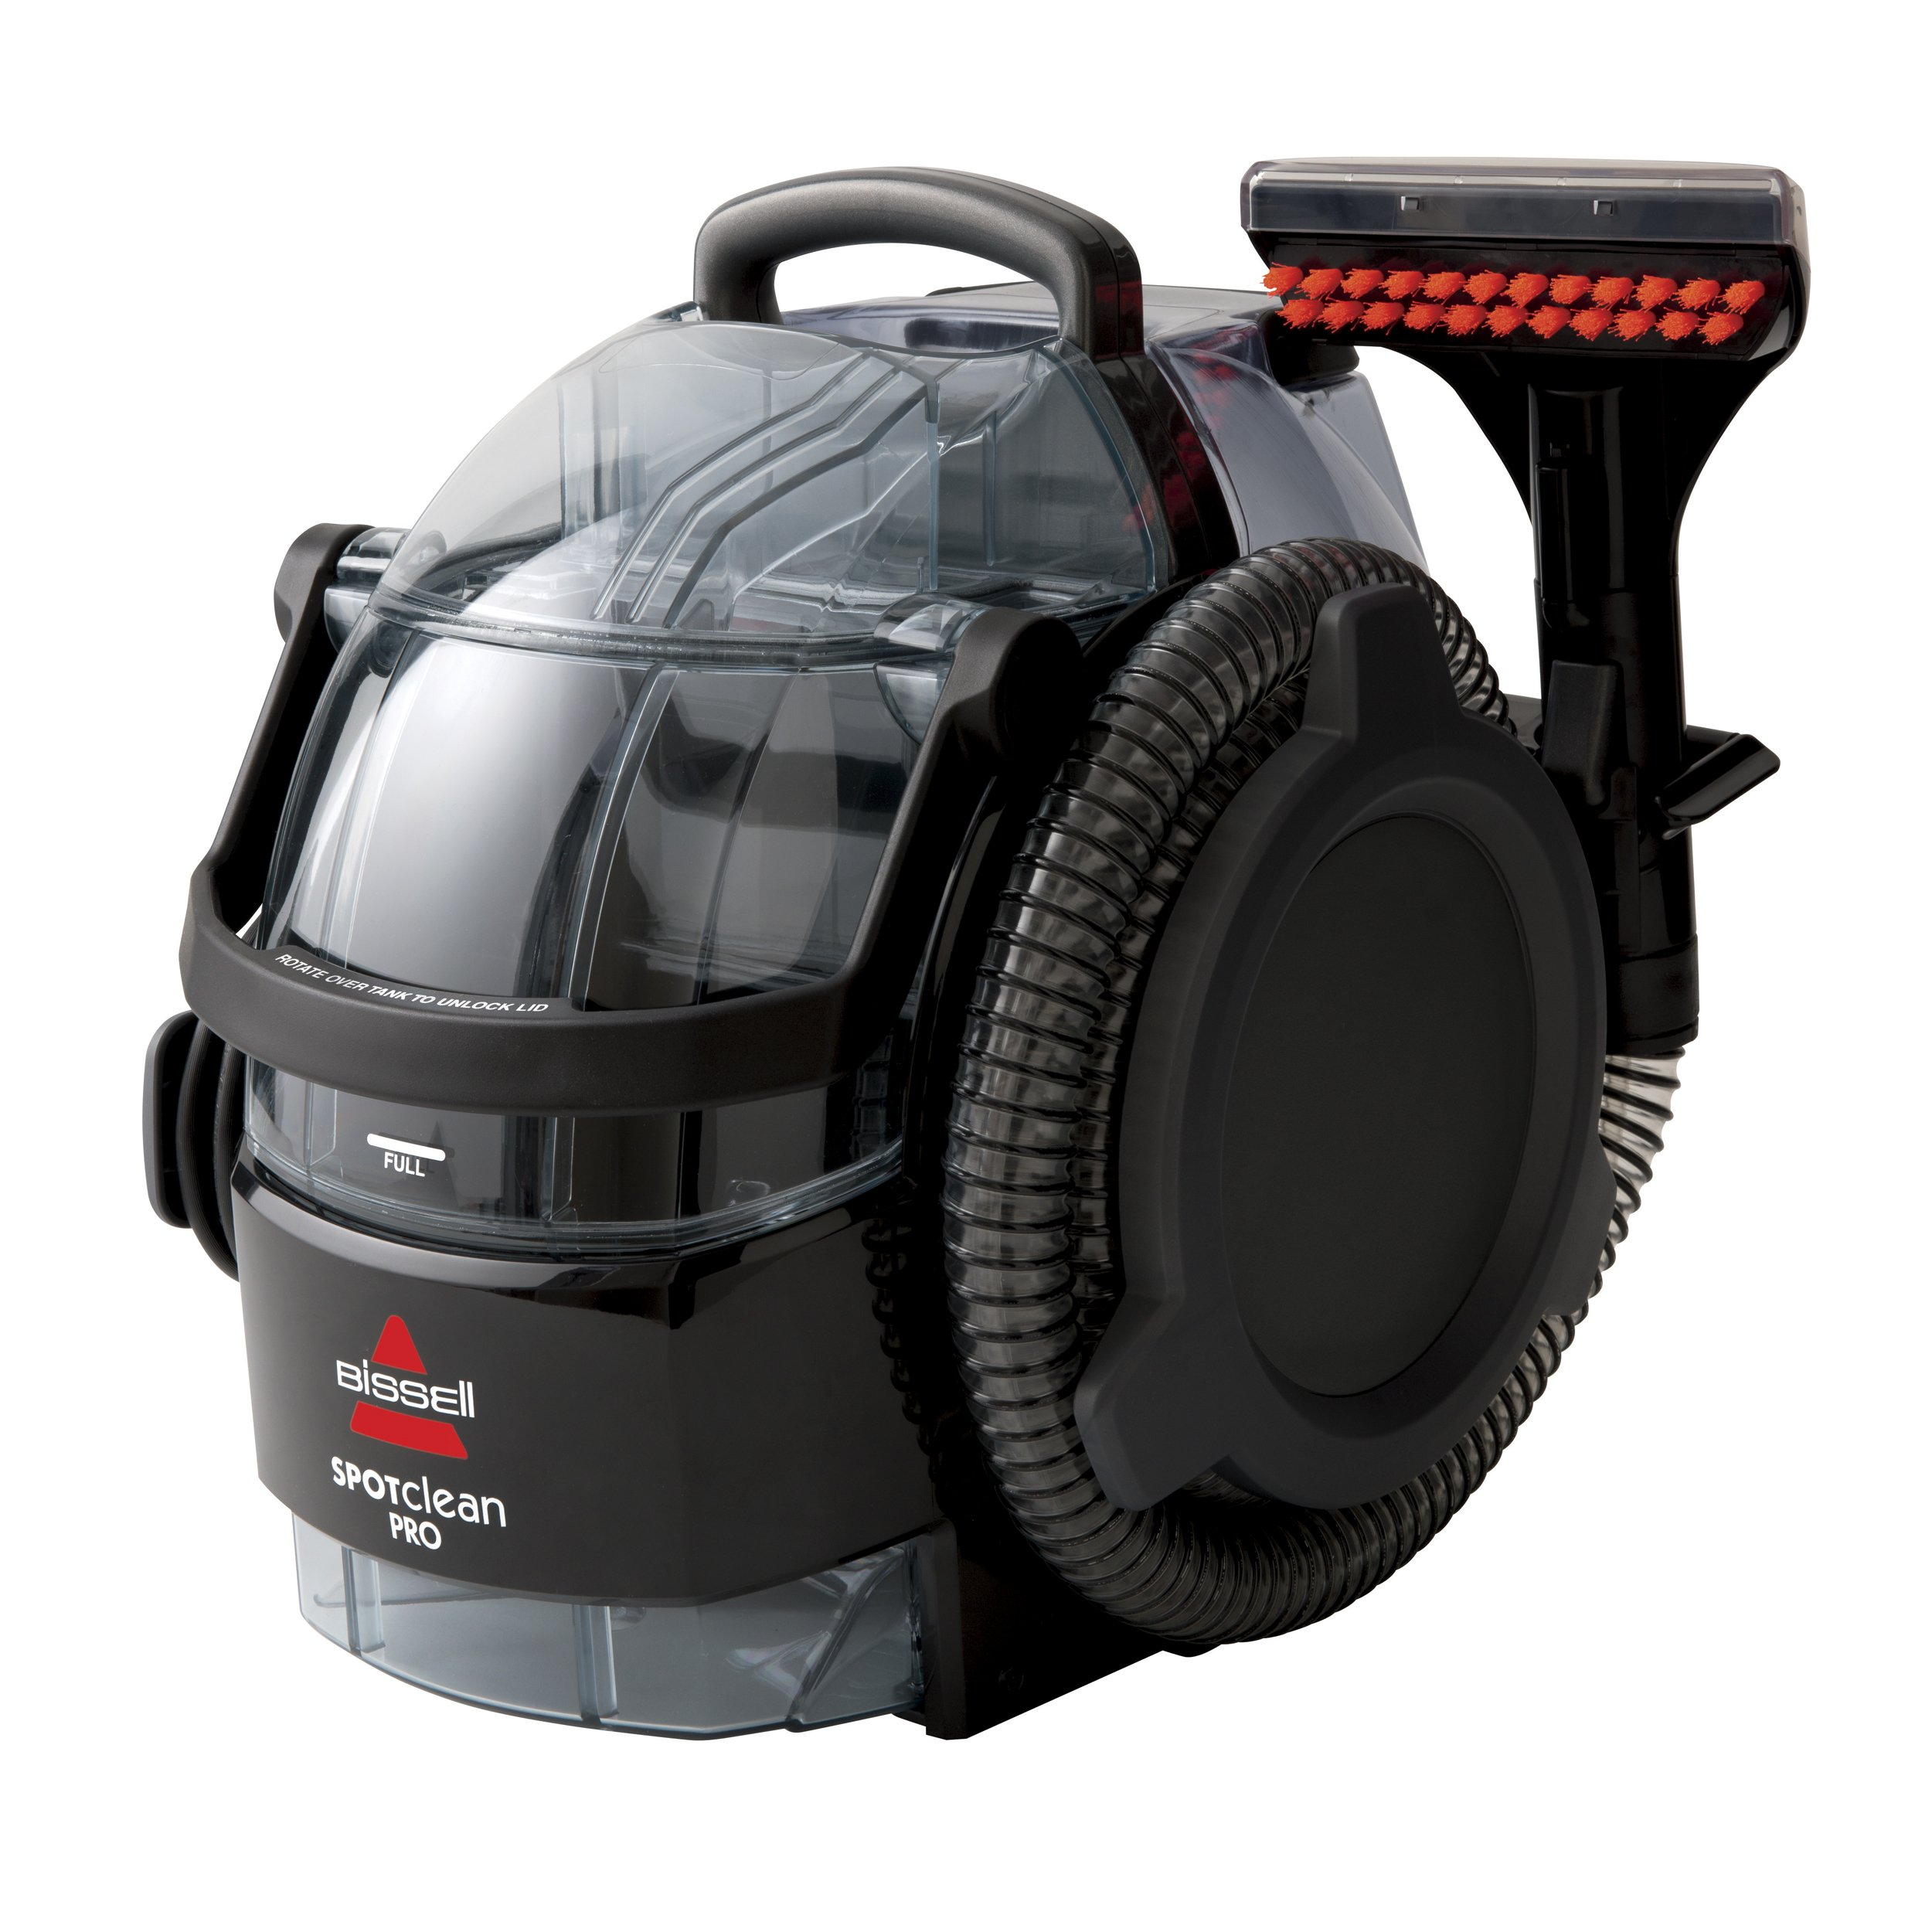 Bissell 3624 SpotClean Professional Portable Carpet Cleaner - Corded product image